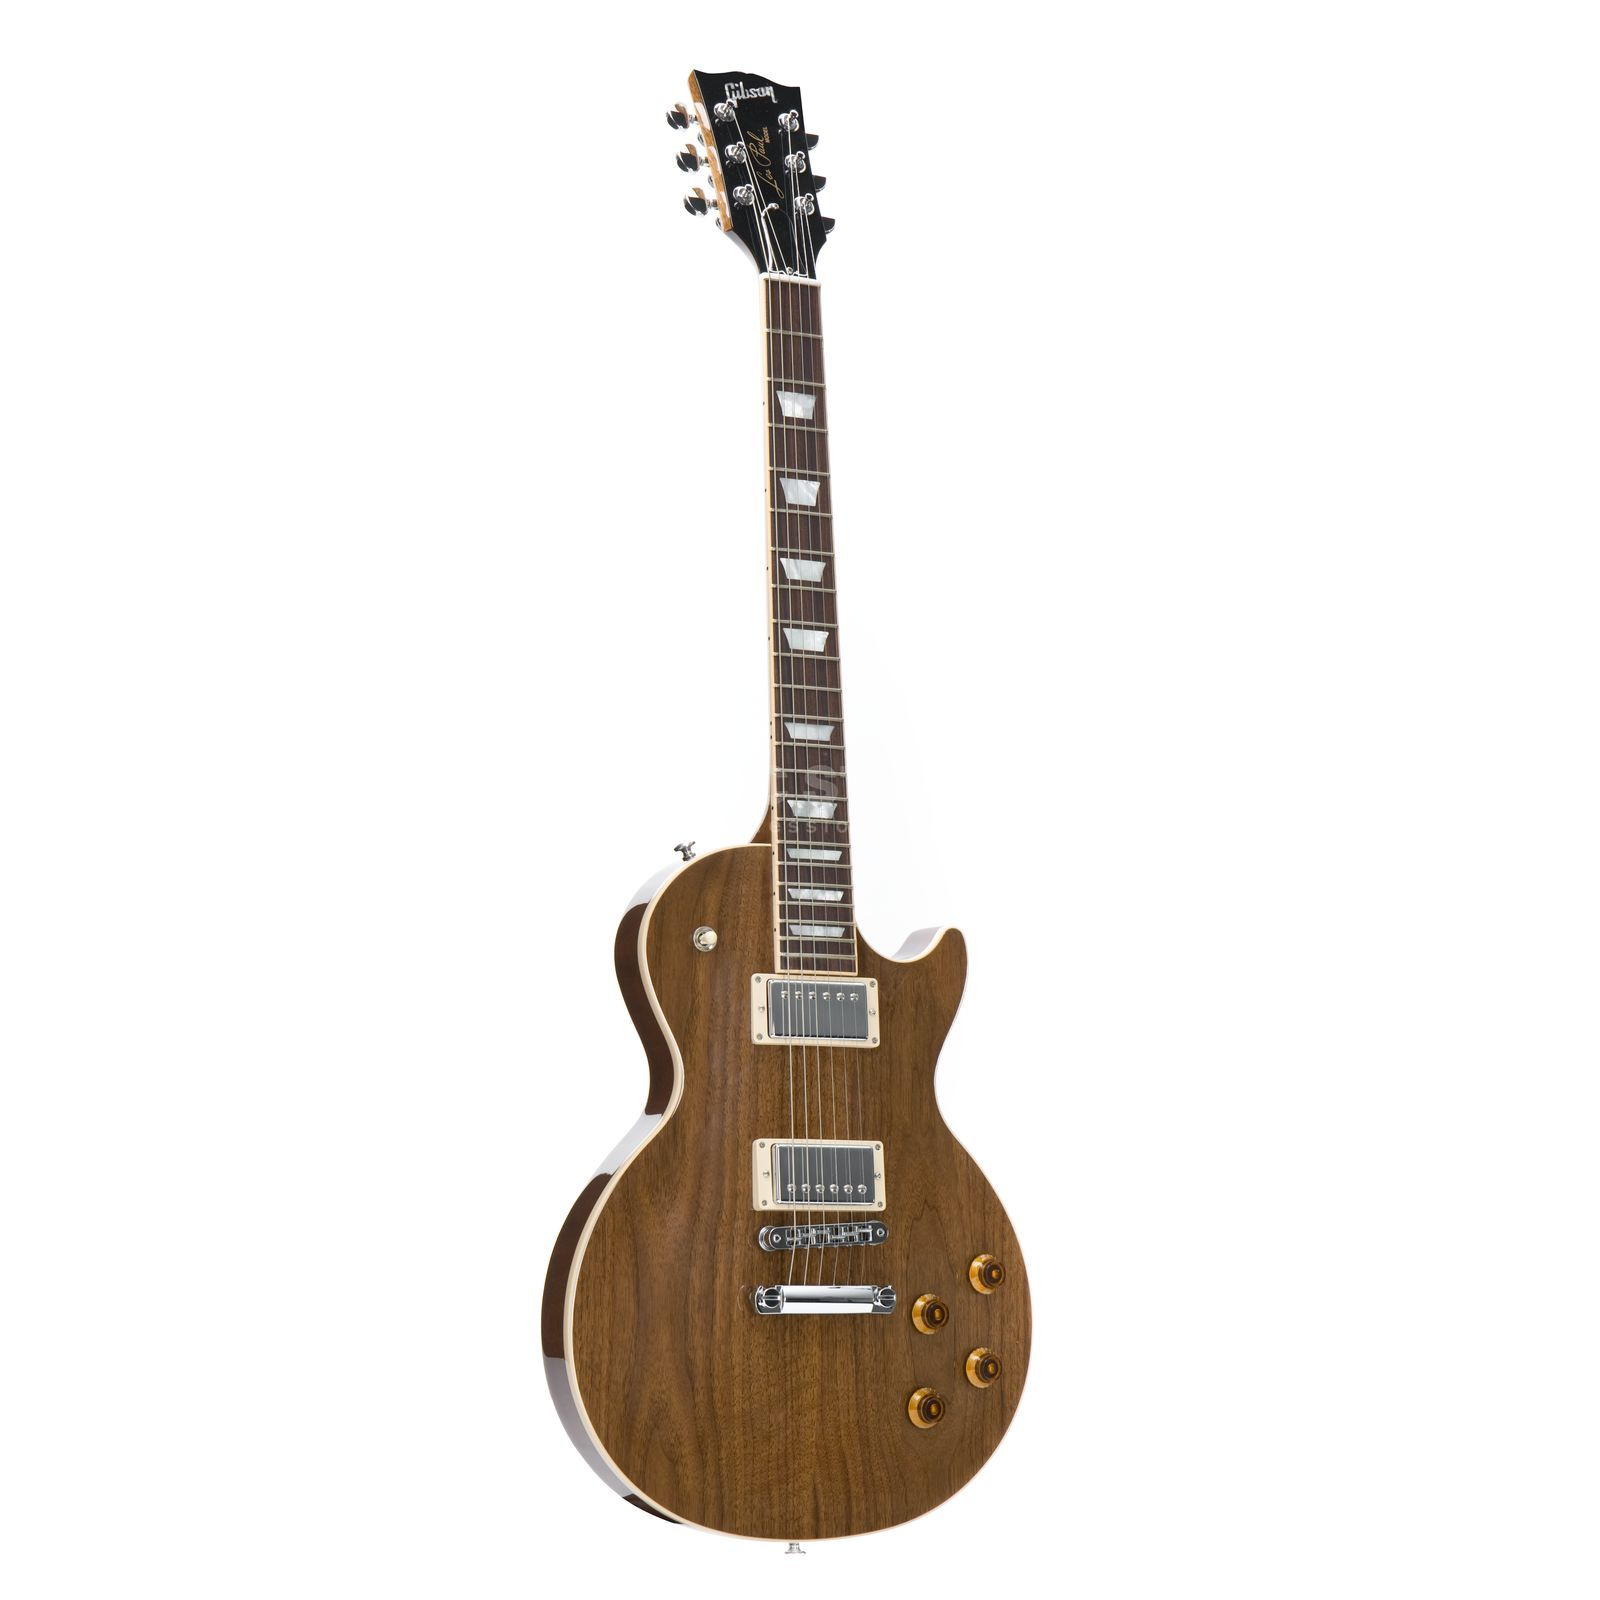 Gibson Les Paul Standard Figured Walnut Limited Product Image